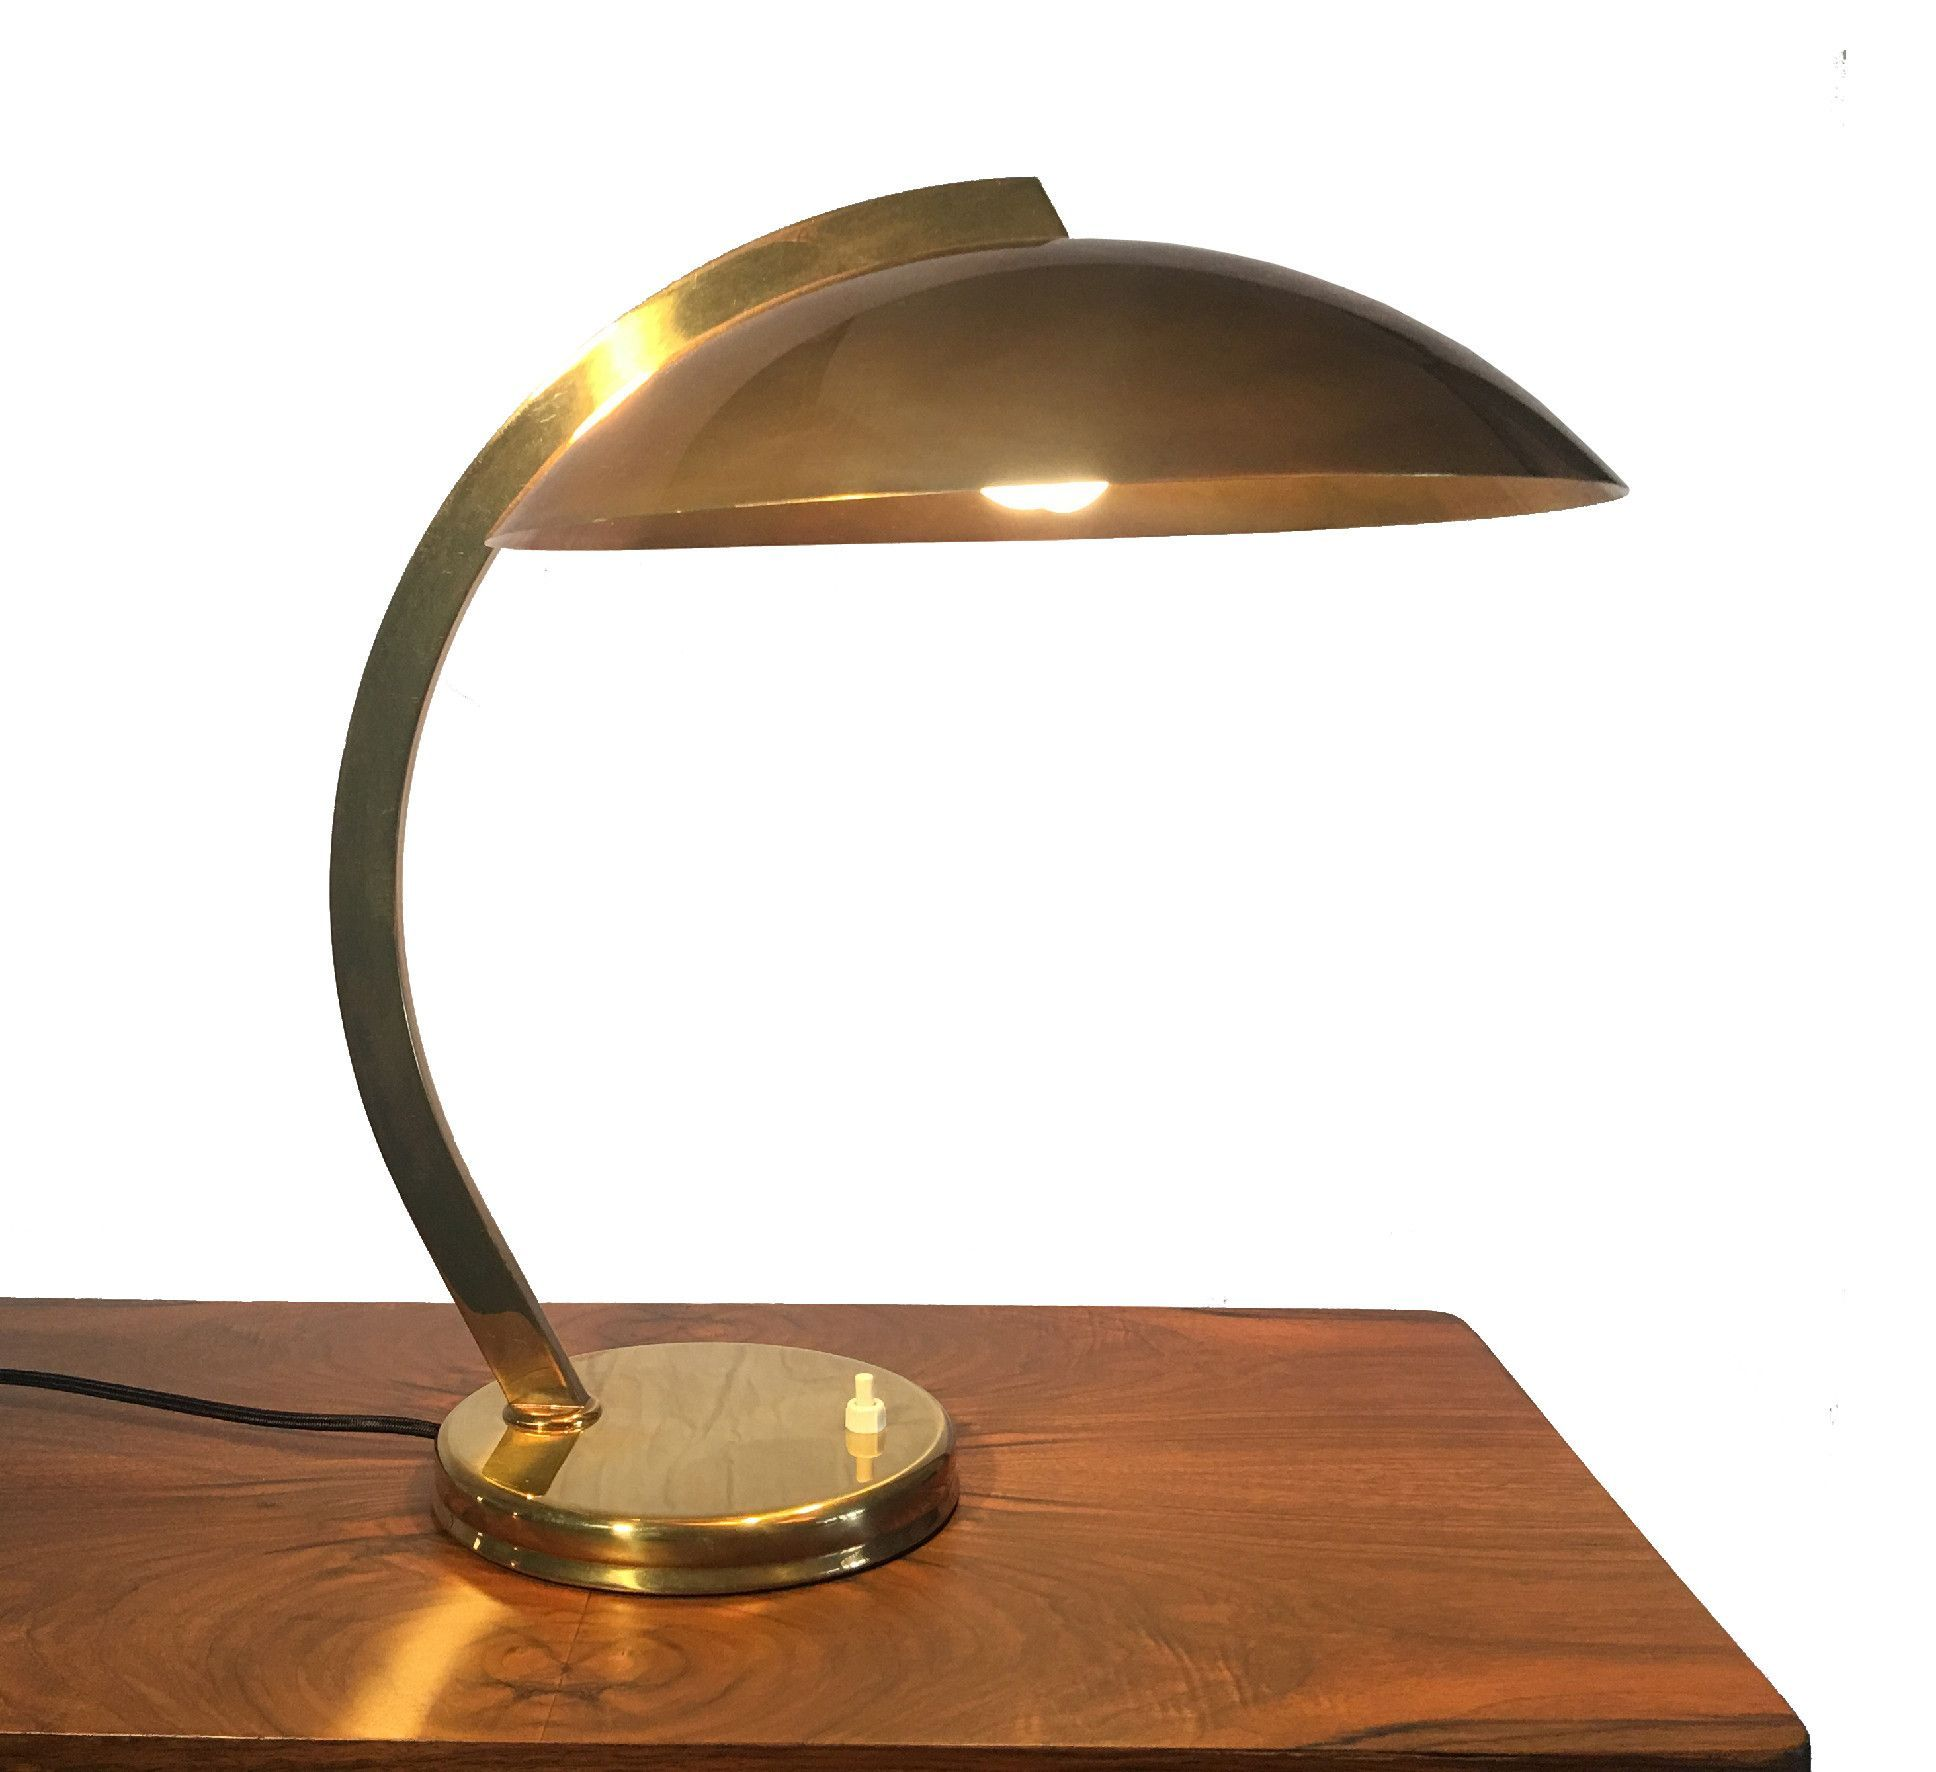 Vintage French Deco Desk Lamp With Domed Metal Shade Brass